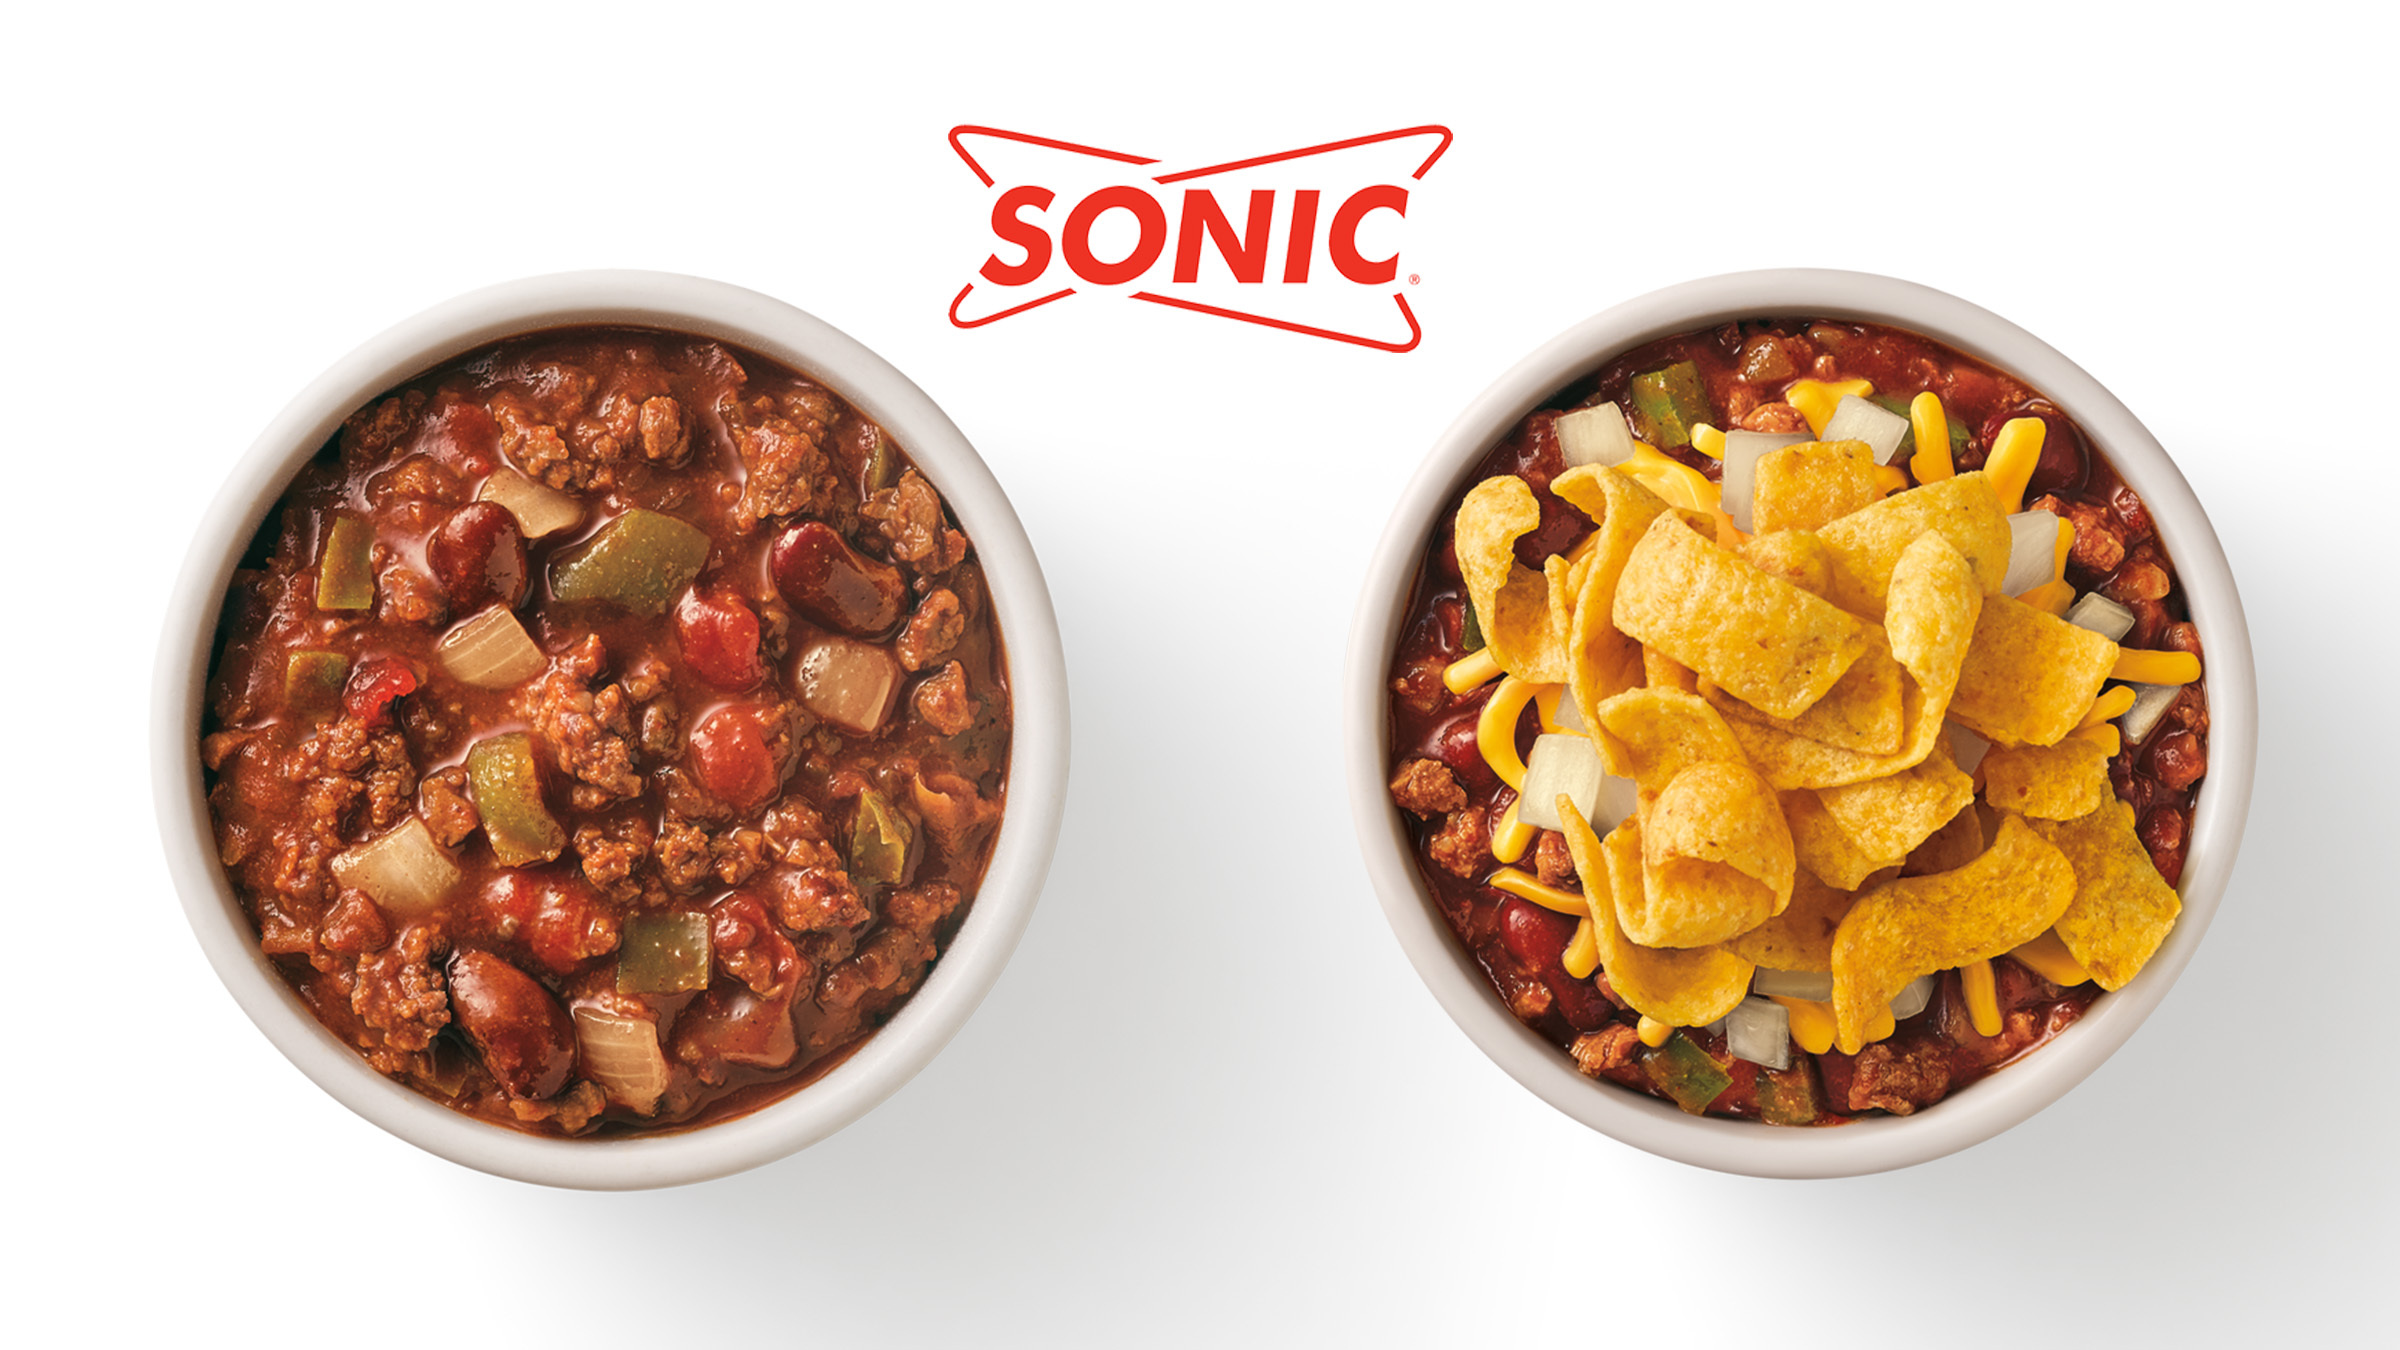 2a02384c8 A New Year and SONIC Drive-In's New Hearty Chili Bowl | Business Wire